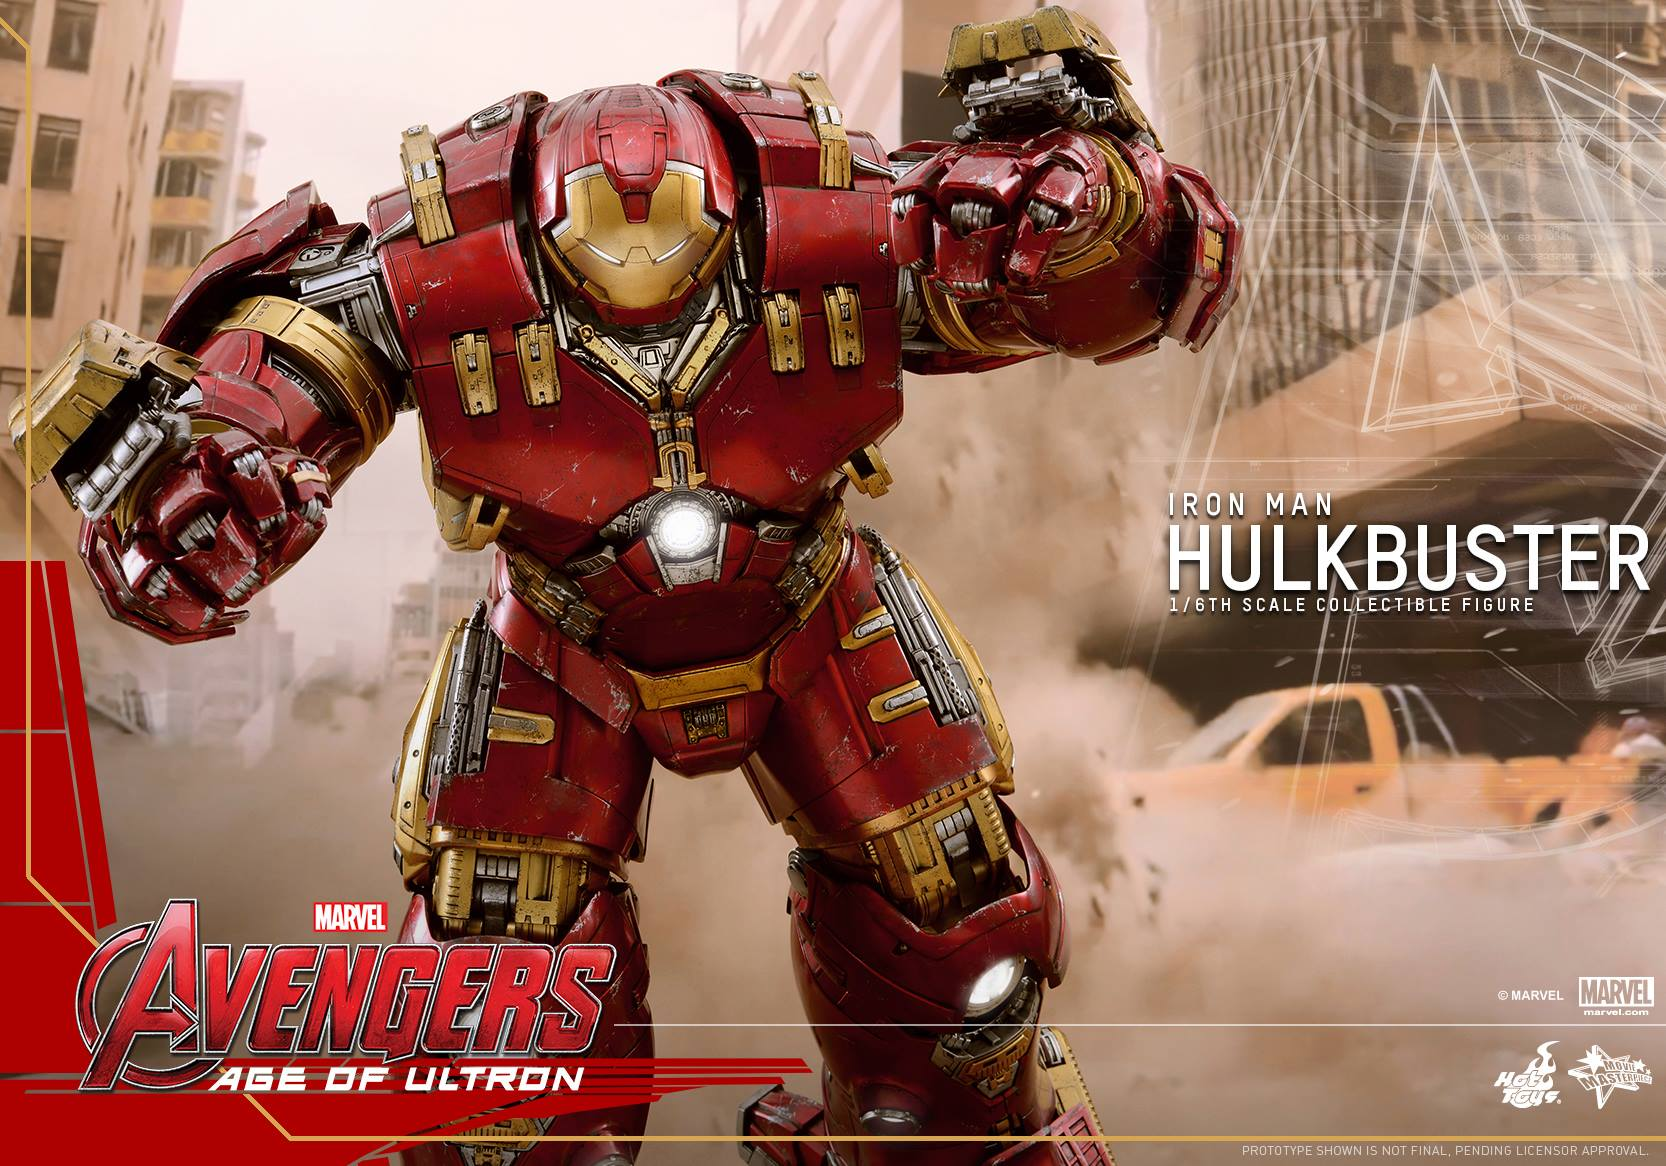 Cool Stuff: Hot Toys Hulkbuster From Avengers: Age of Ultron